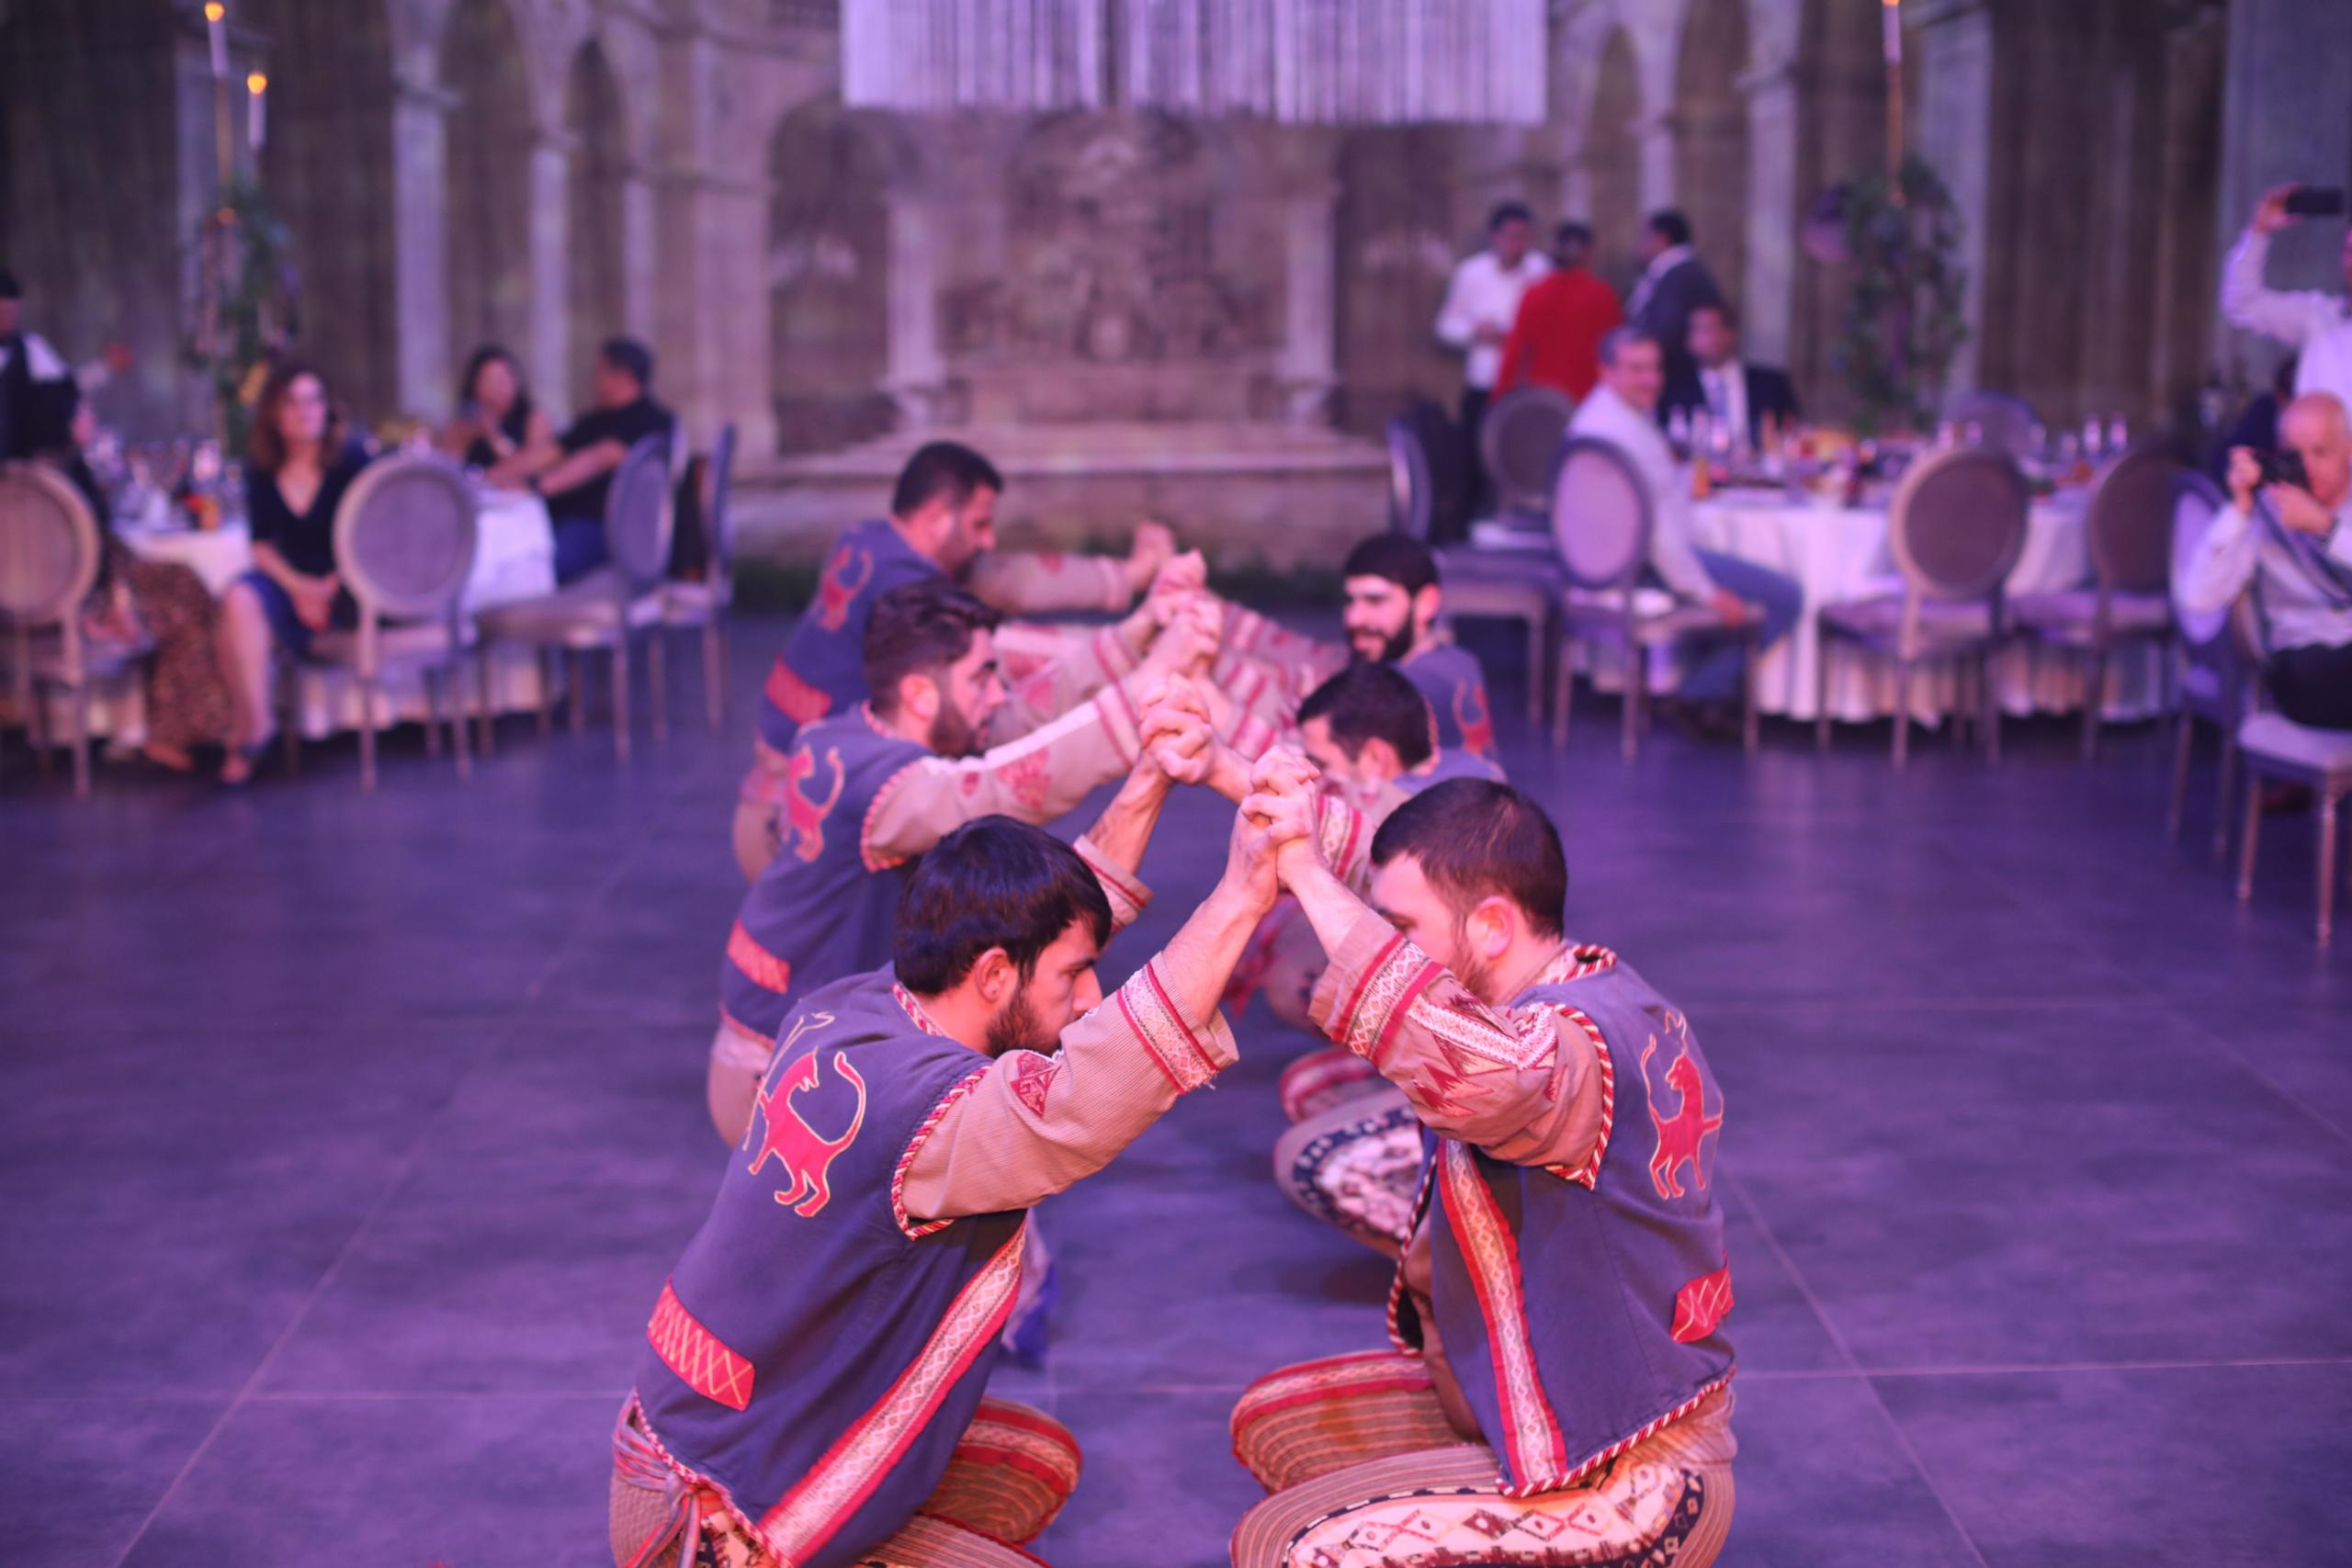 eventplannerinArmenia . Extraordinary Celebrations in Armenia